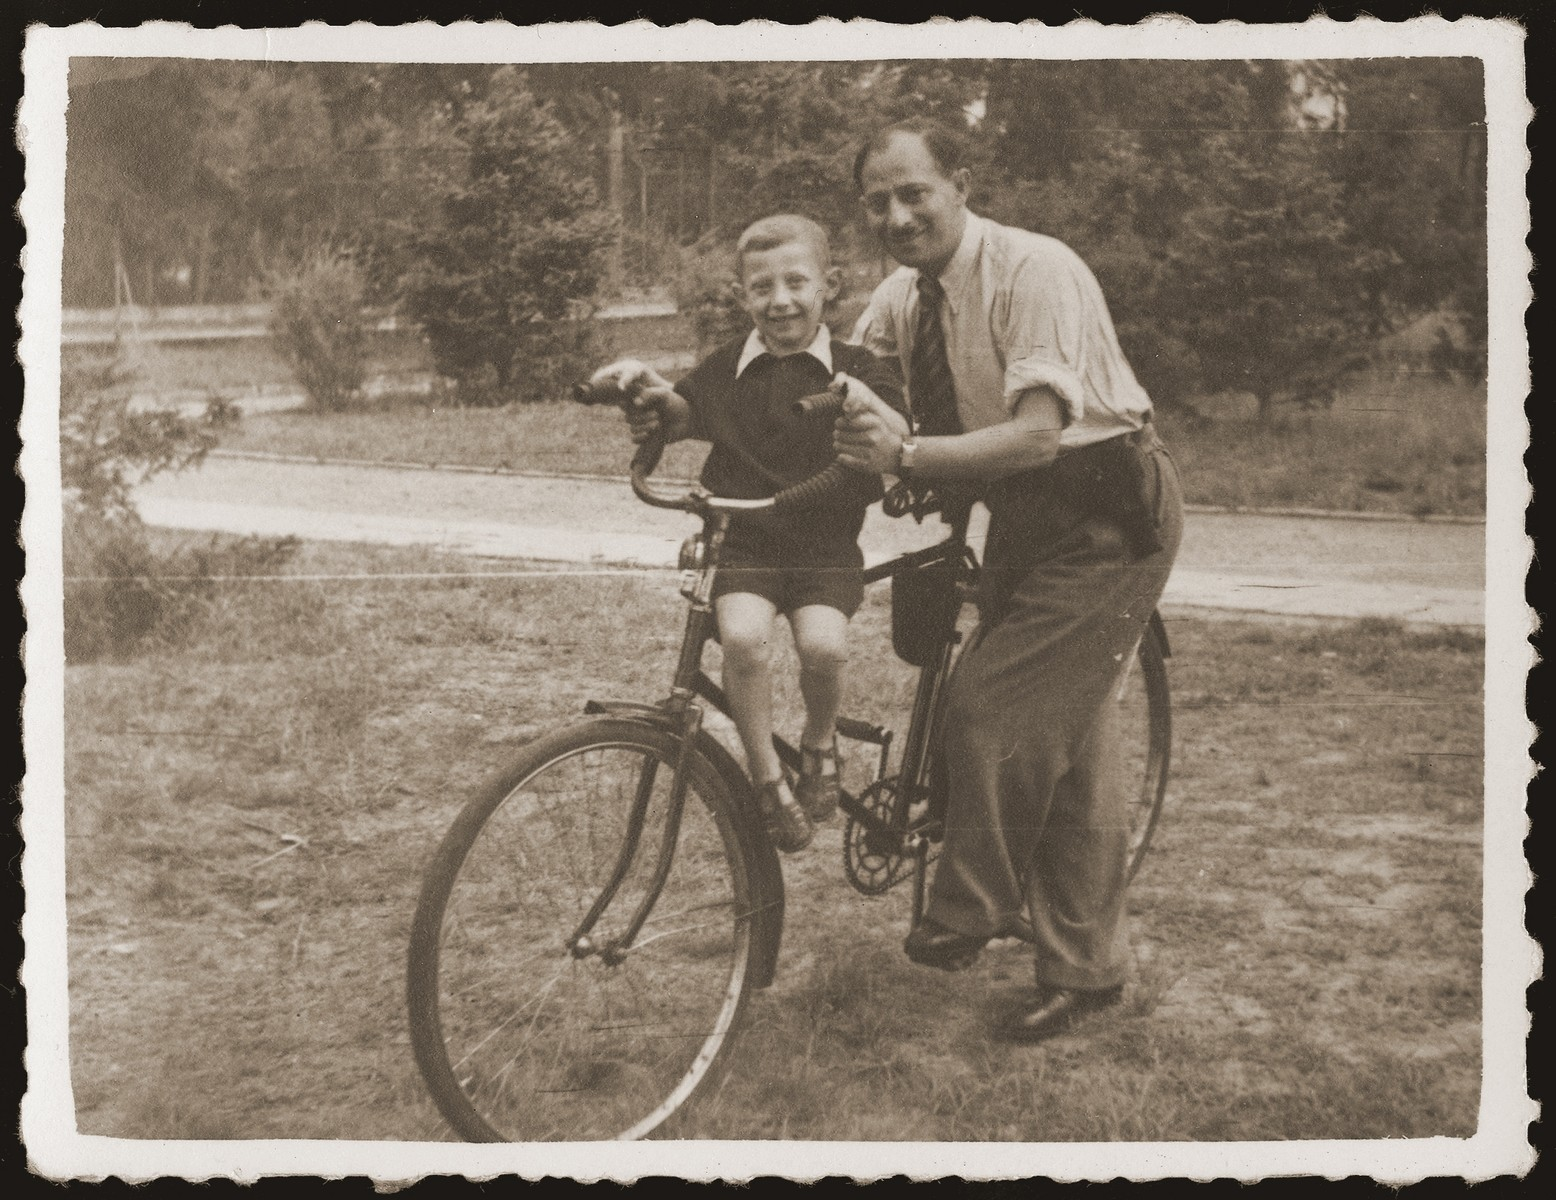 Gutman Gryniewicz and his son, Adam, pose for a picture, during a parents day in the sanatorium for Jewish children in Srodborow, near Warsaw.